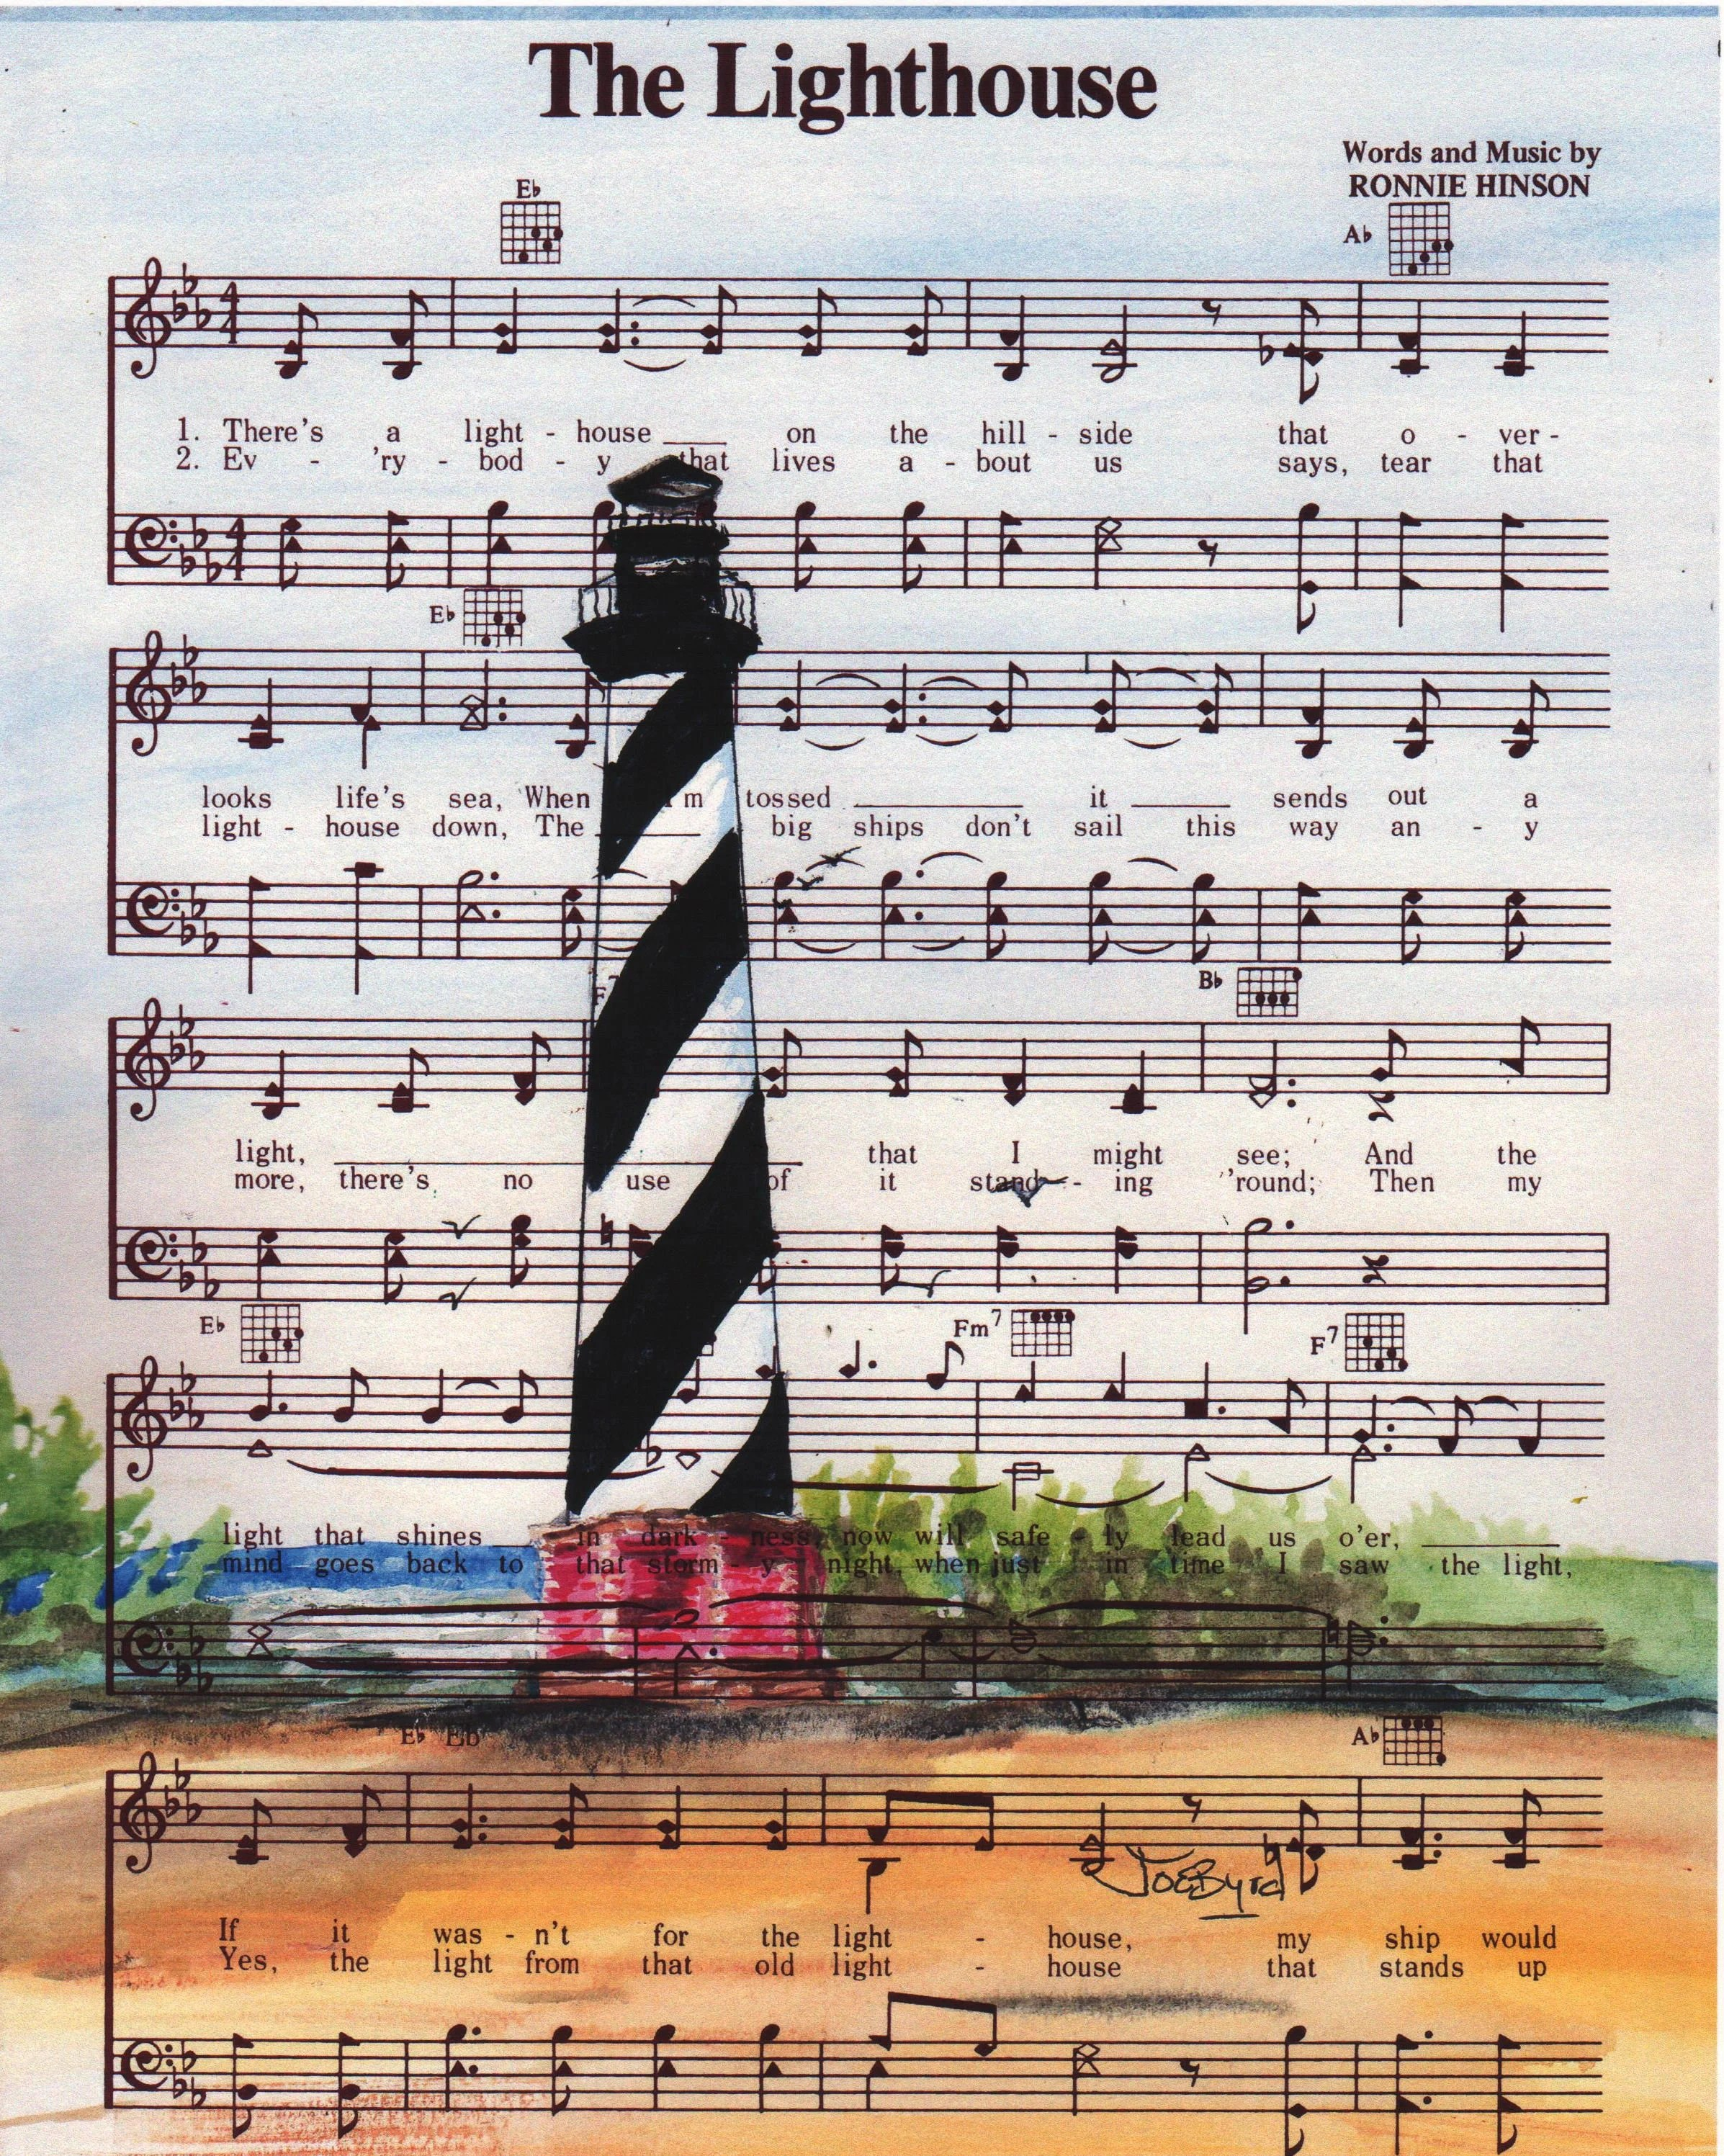 I Thank God For The Lighthouse Lyrics : thank, lighthouse, lyrics, Hatteras, Lighthouse, Original, Printlighthouse